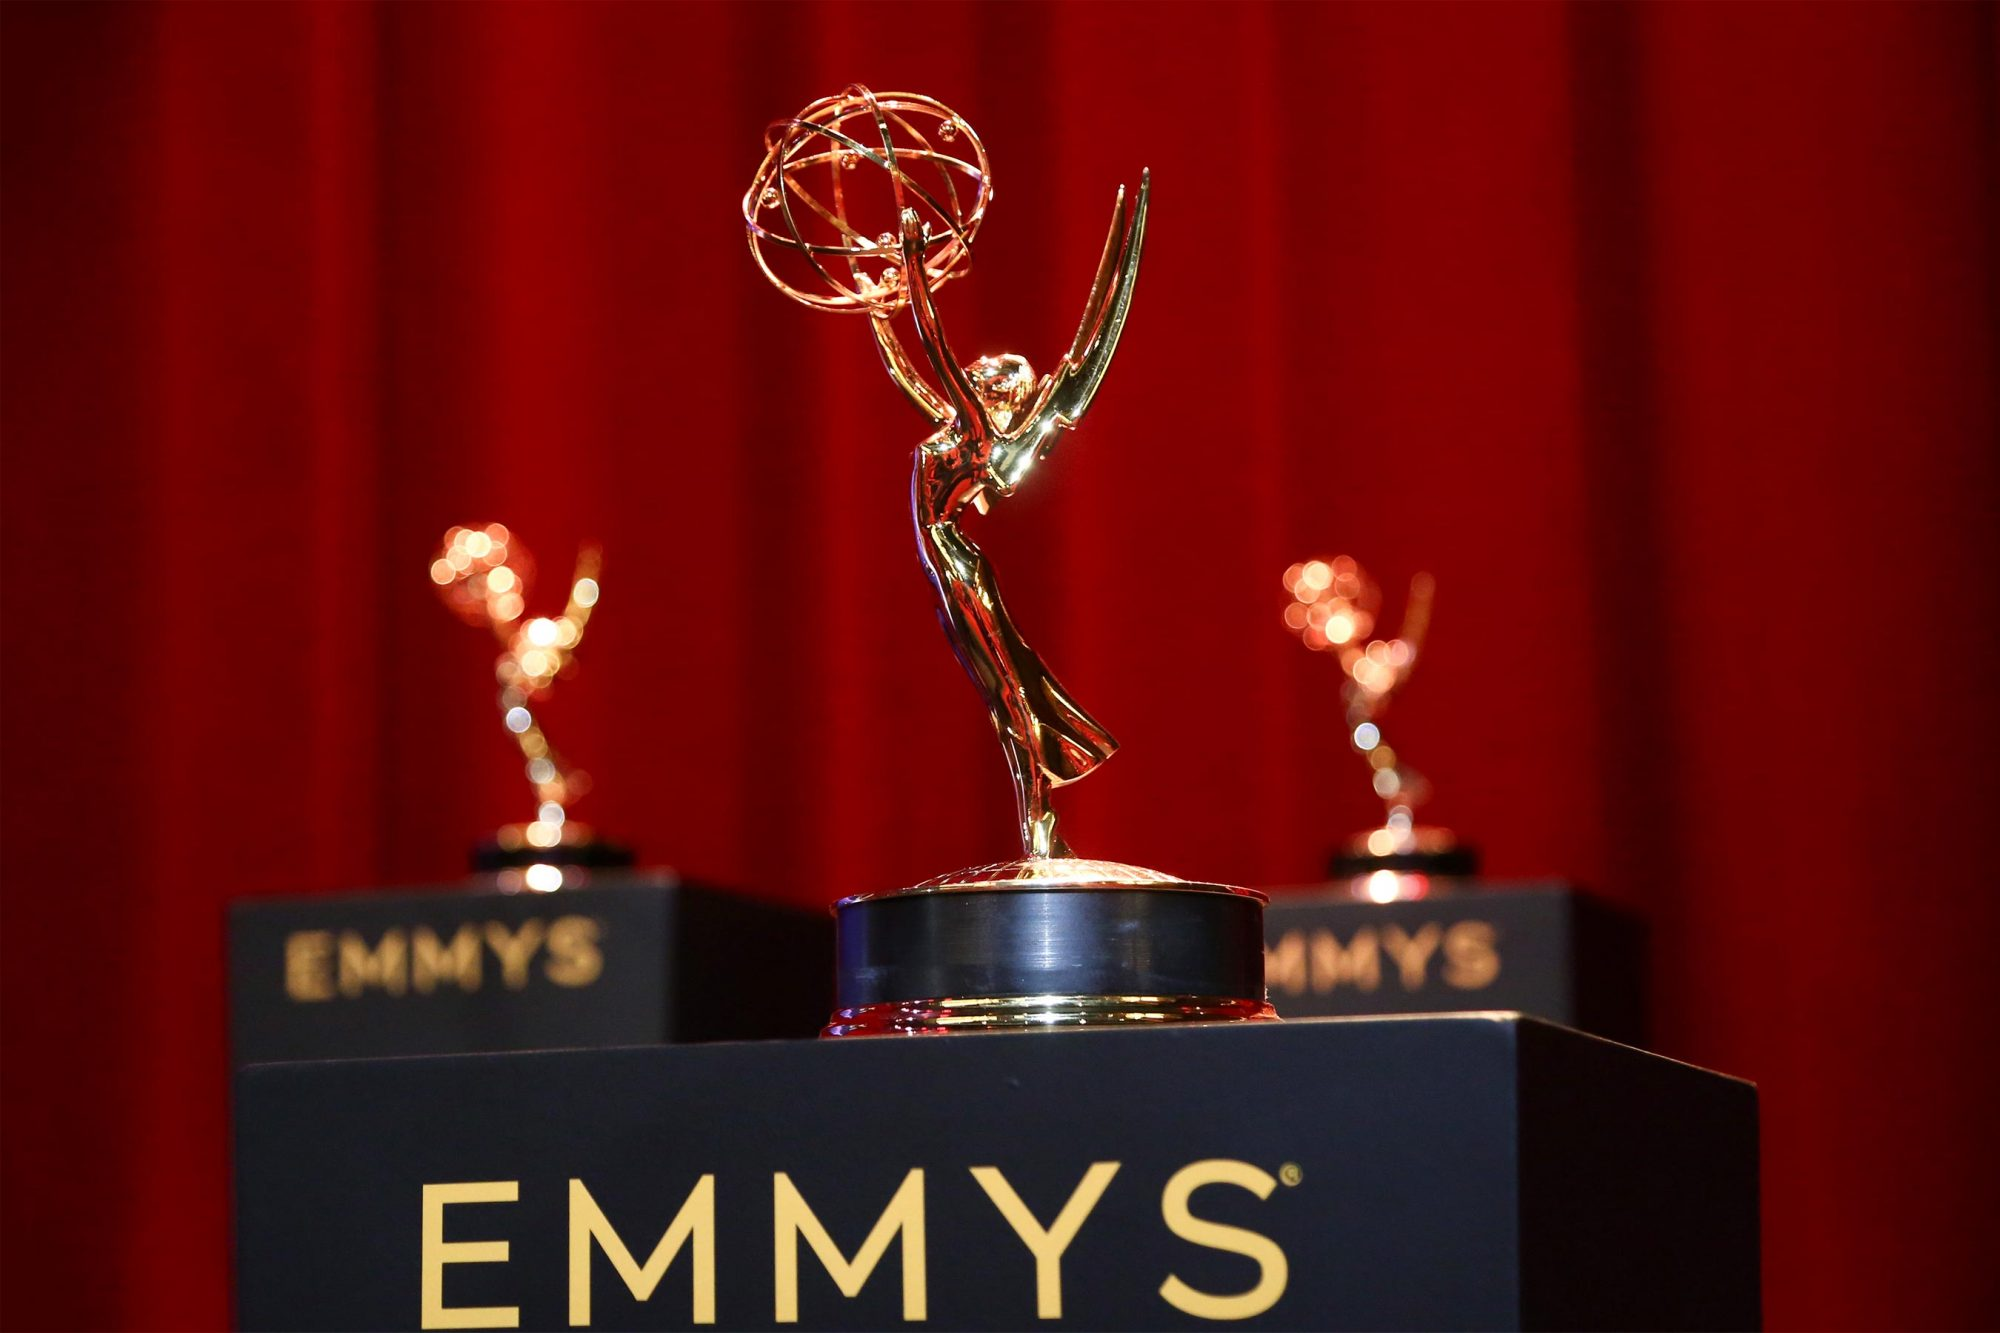 NORTH HOLLYWOOD, CALIFORNIA - JULY 16: A general view of the atmosphere during the 71st Emmy Awards Nominations Announcement at Saban Media Center on July 16, 2019 in North Hollywood, California. (Photo by Tommaso Boddi/WireImage)